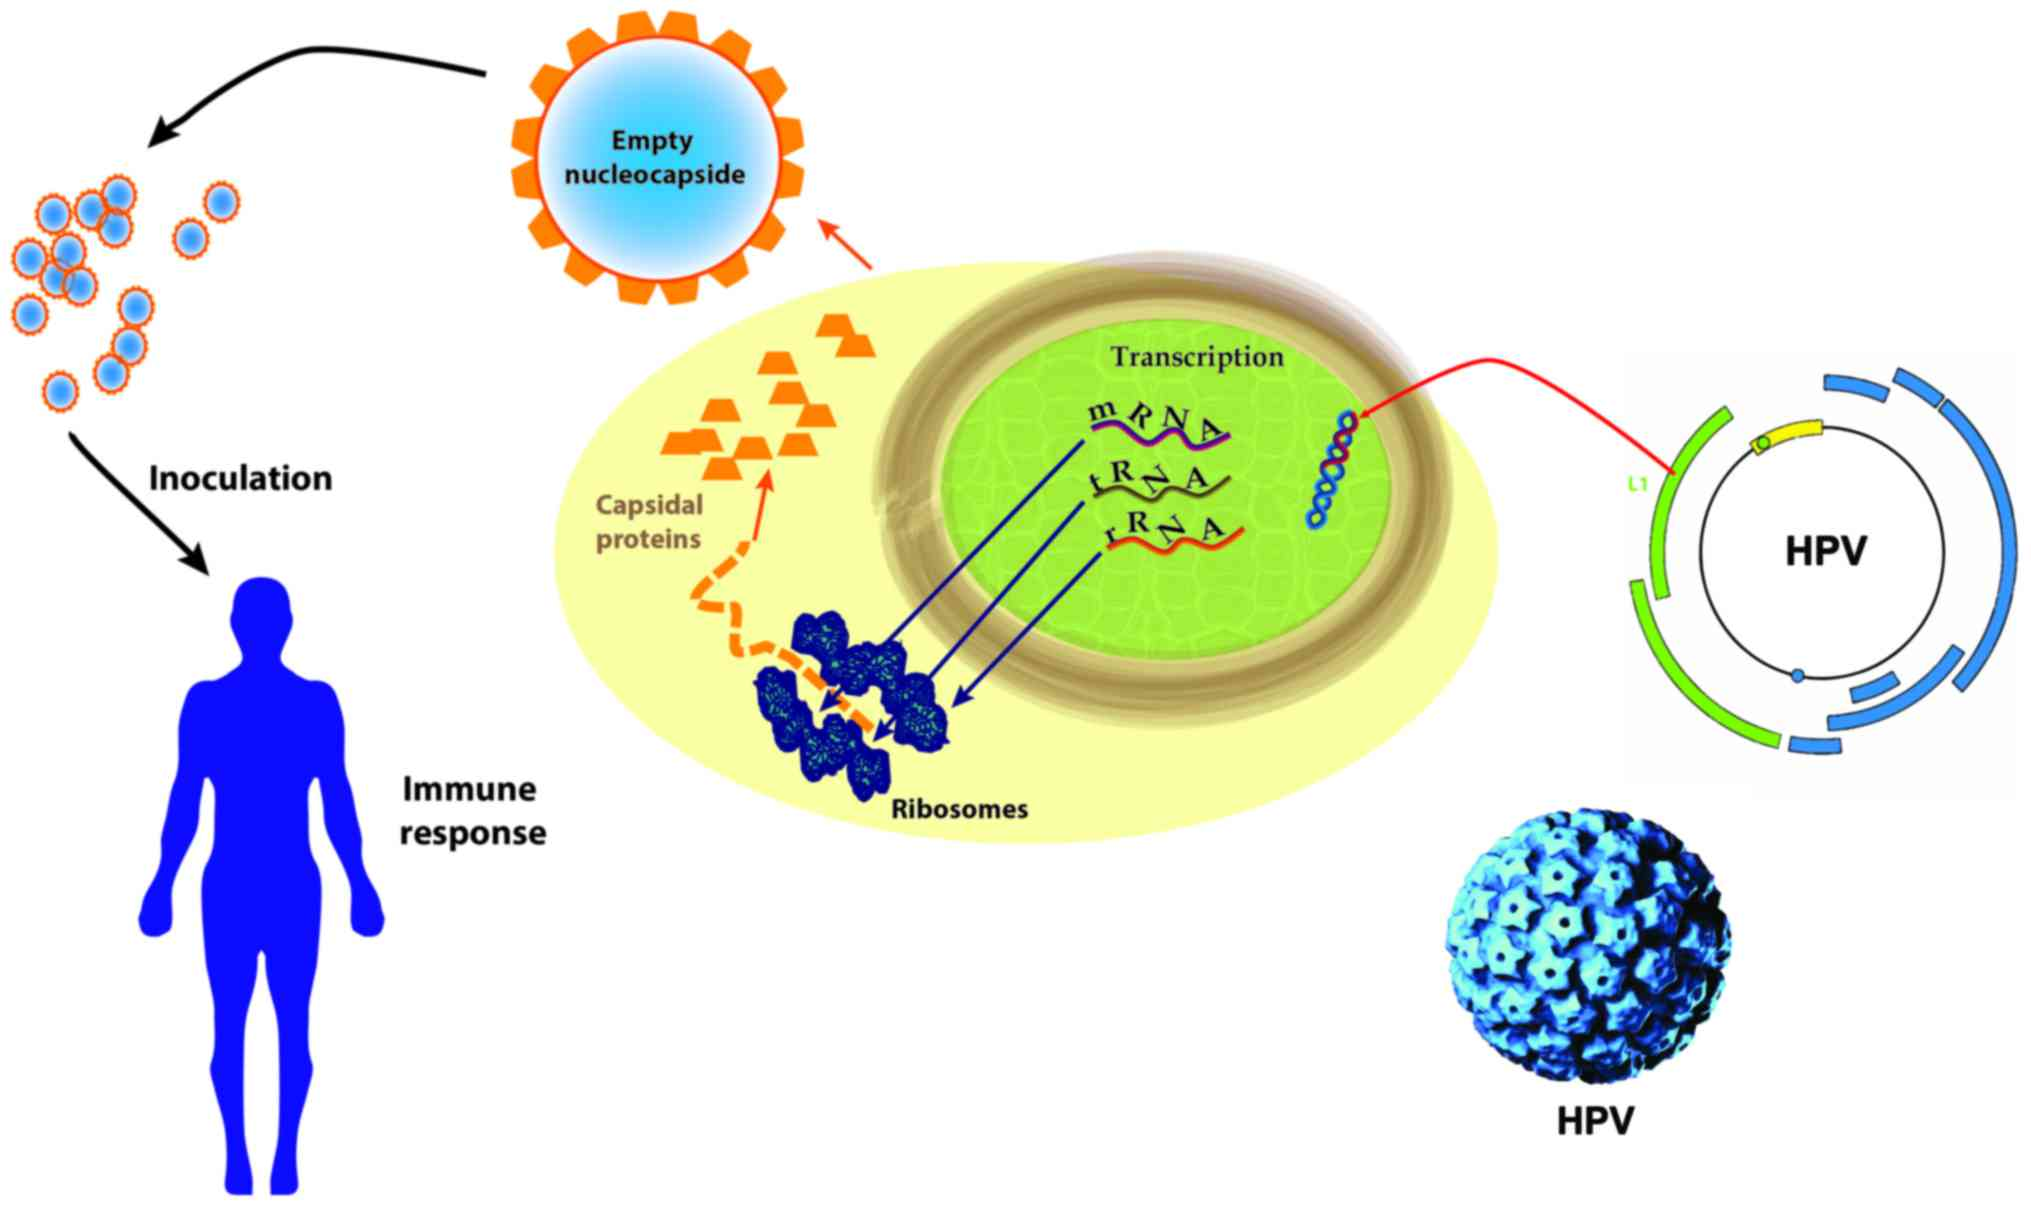 hpv cancer mechanism mass screening for human papillomavirus type 16 infection in infertile couples